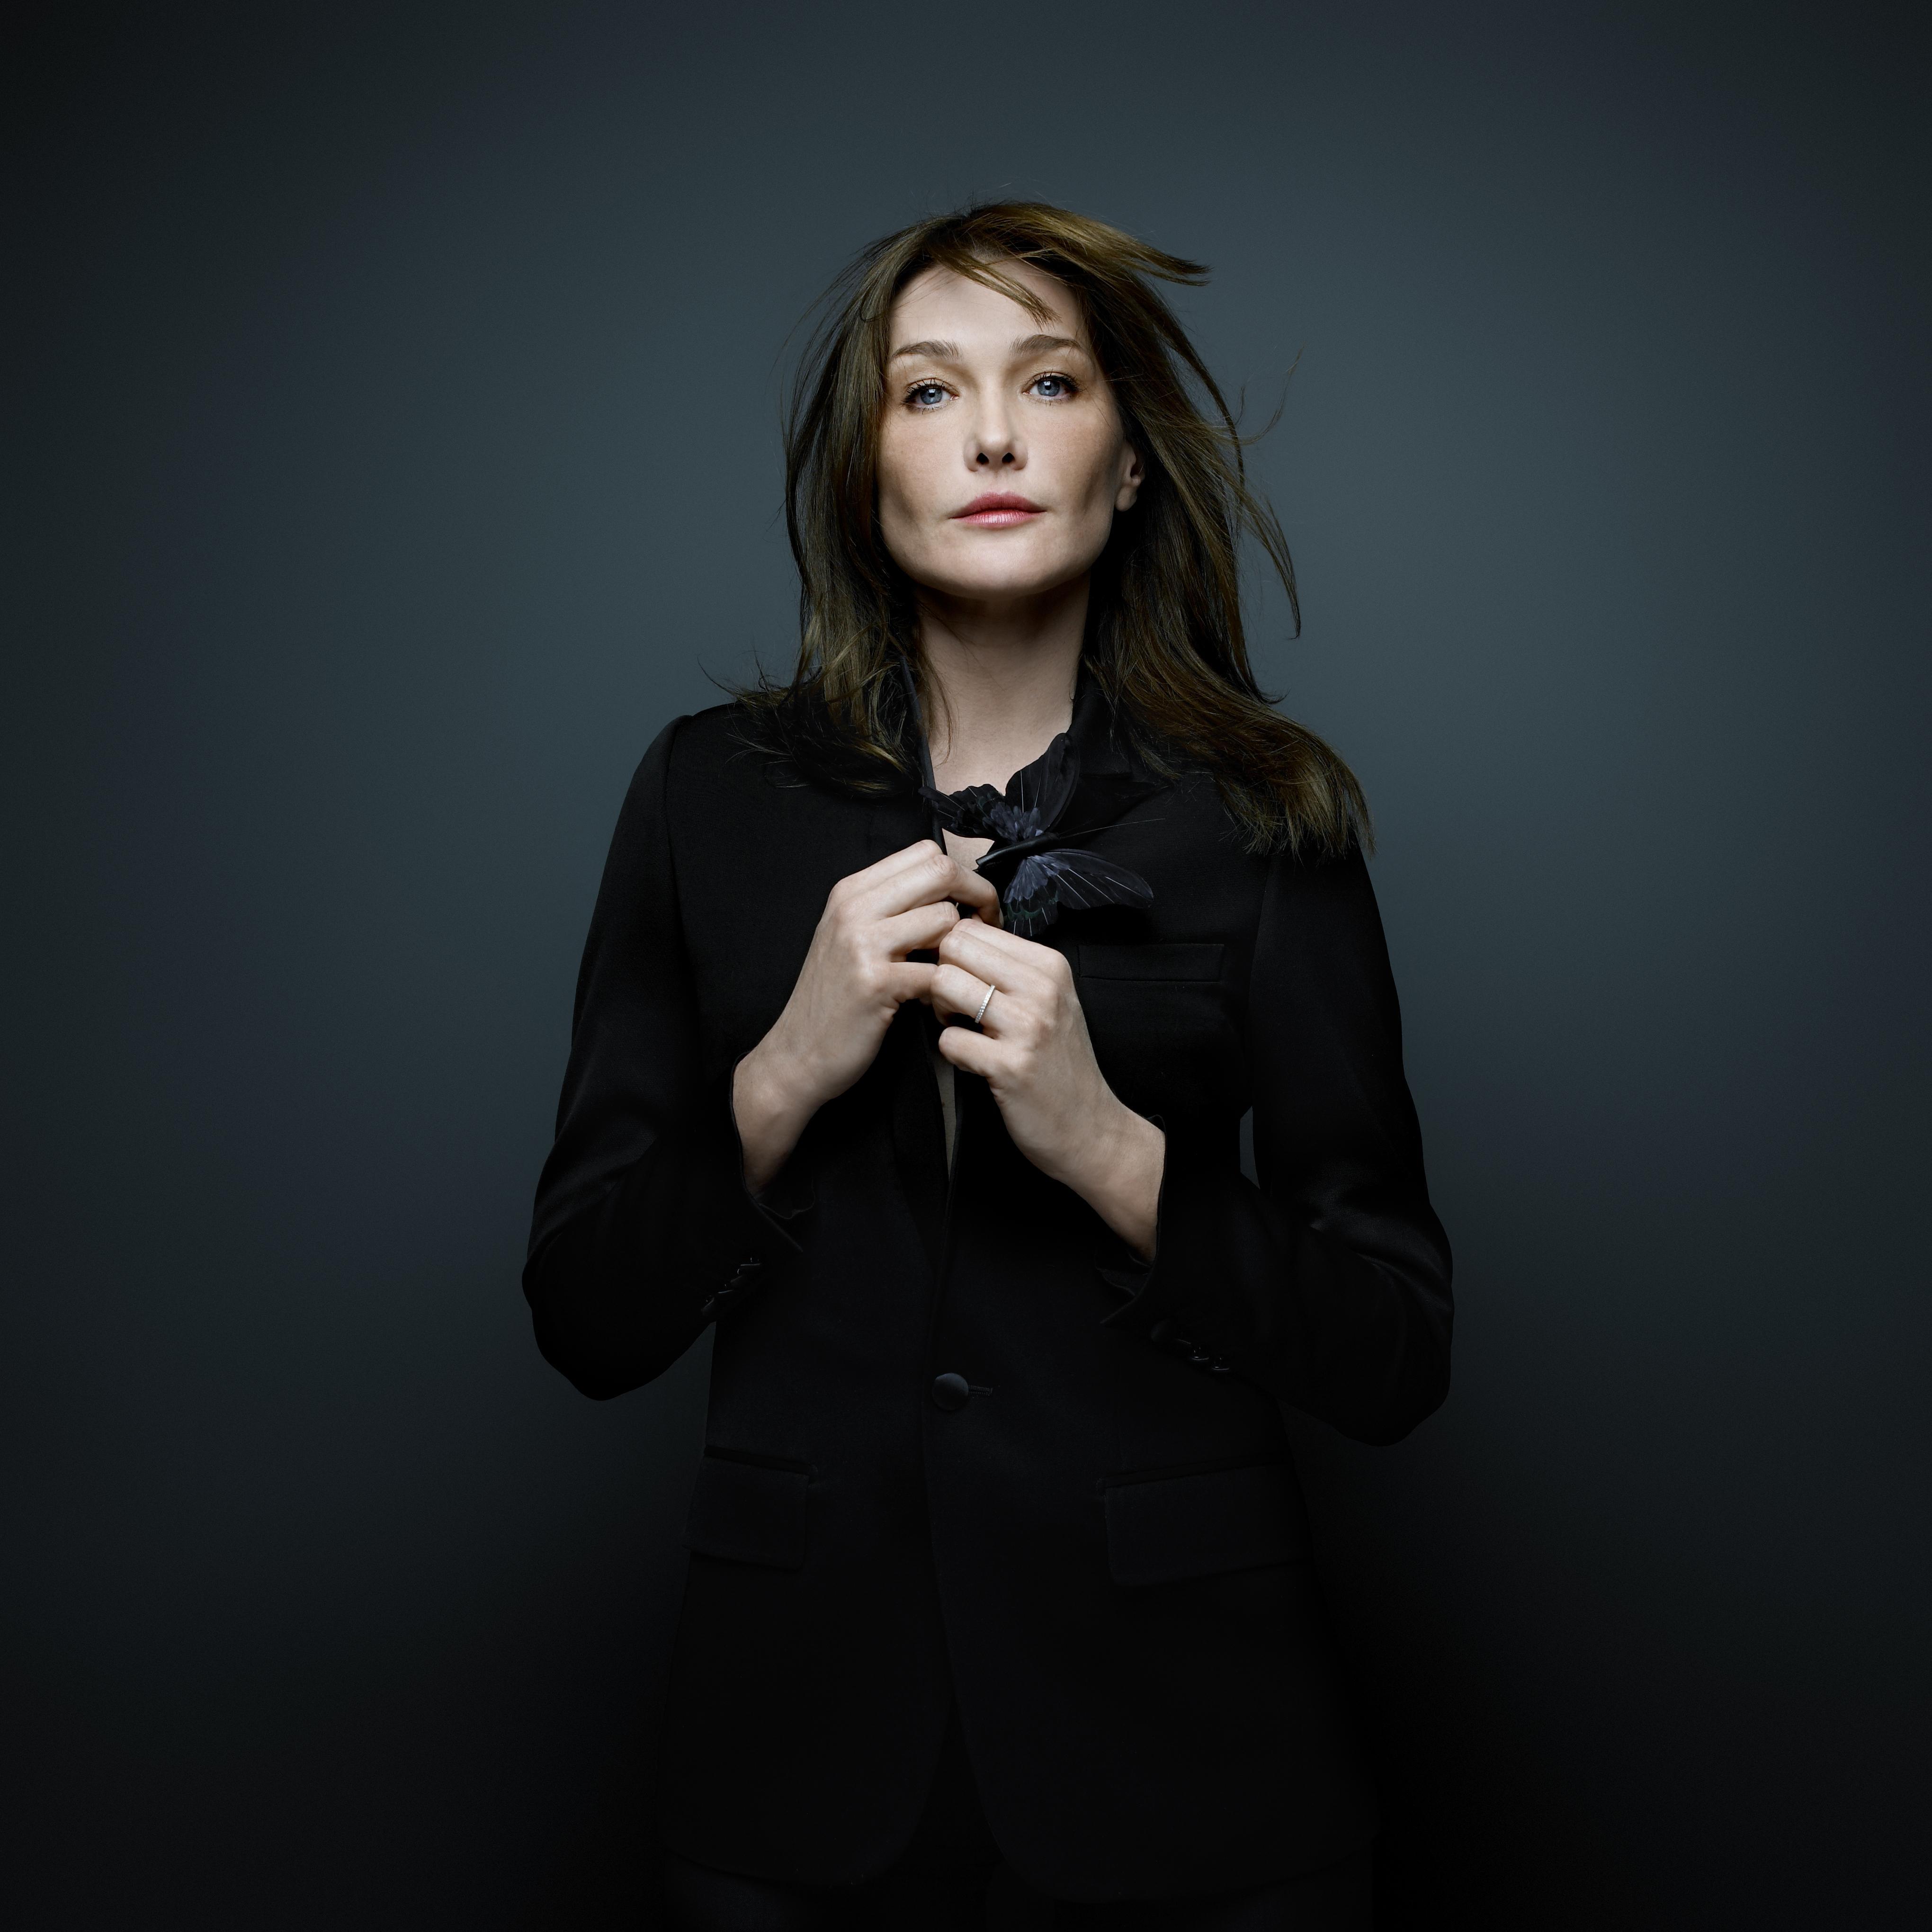 Carla Bruni photo, pics, wallpaper - photo #